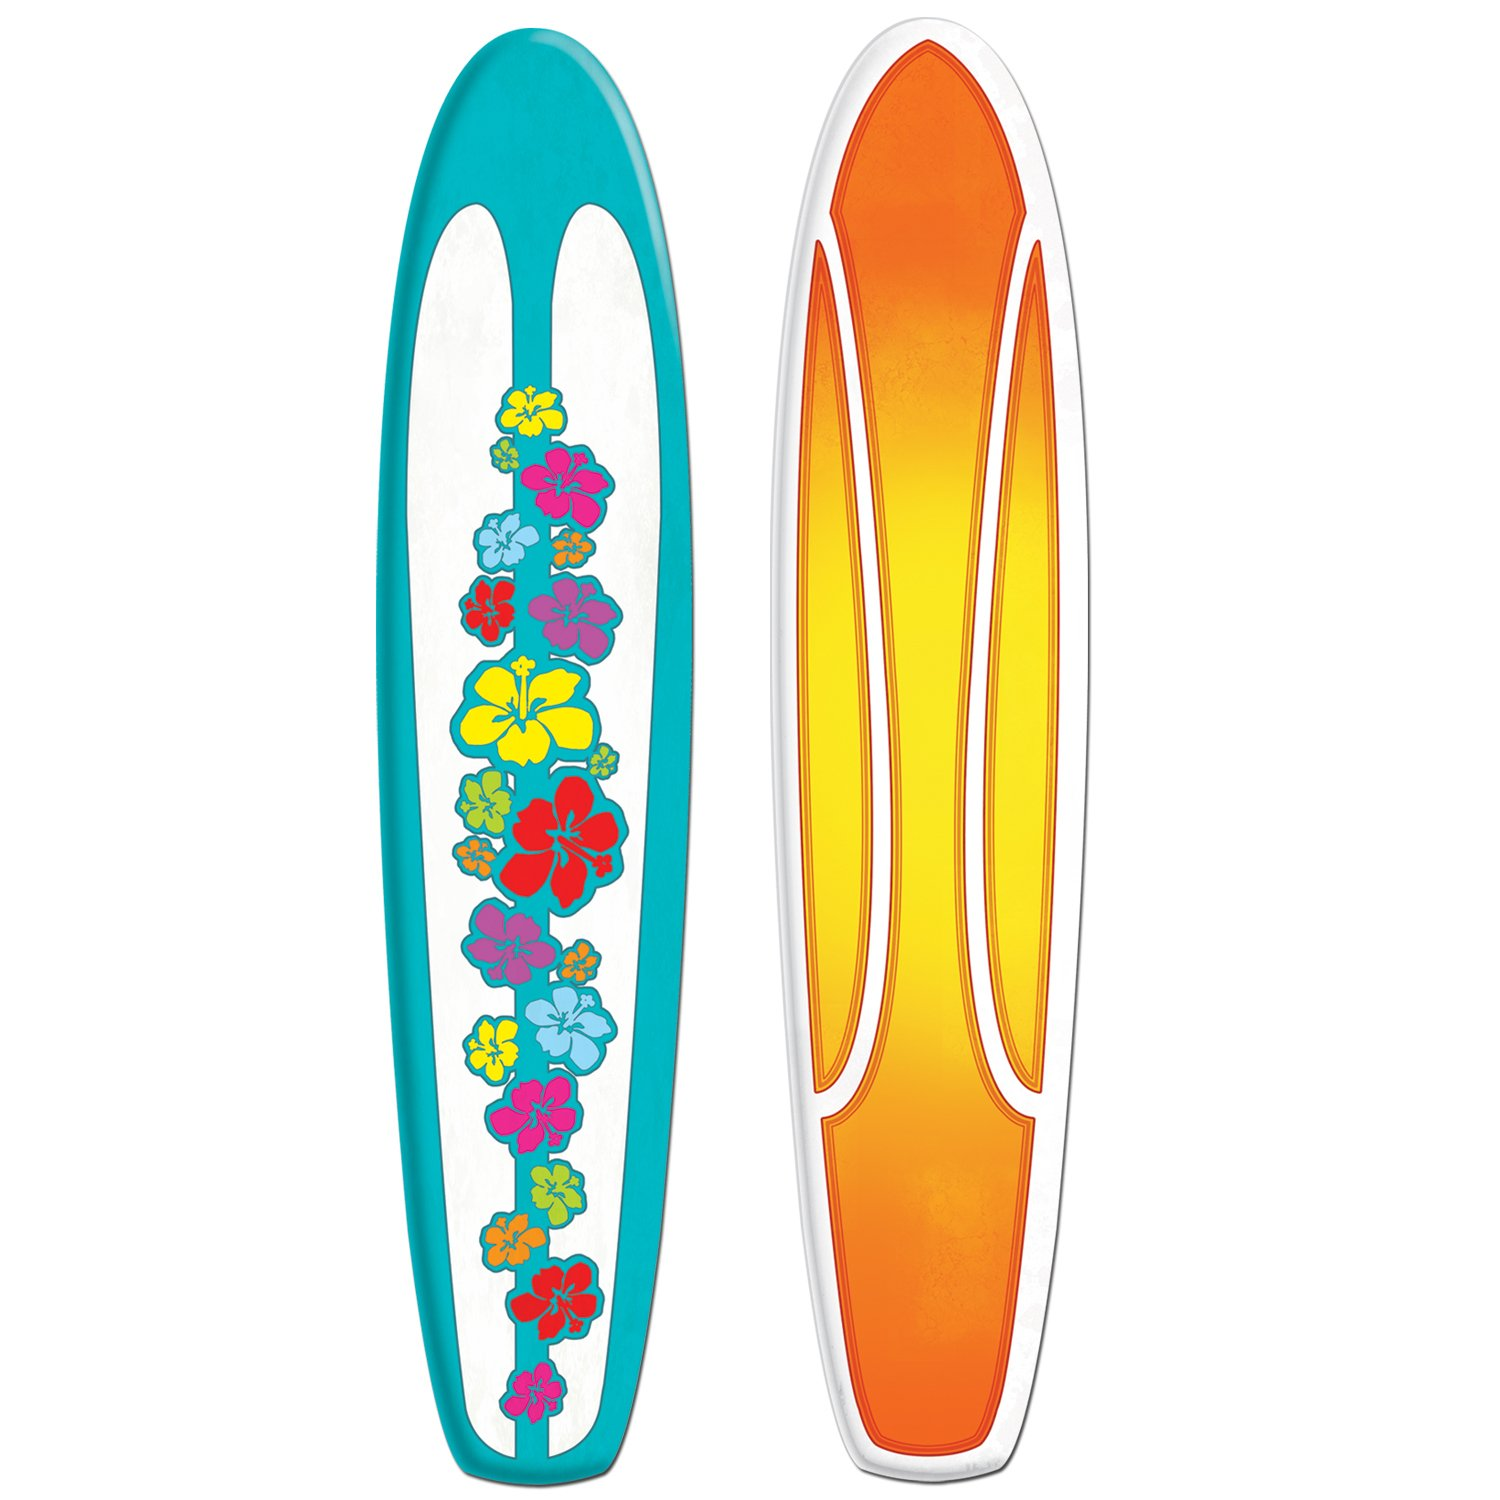 Beistle S50258AZ2, 2 Piece Jointed Surfboards, 5' by Beistle